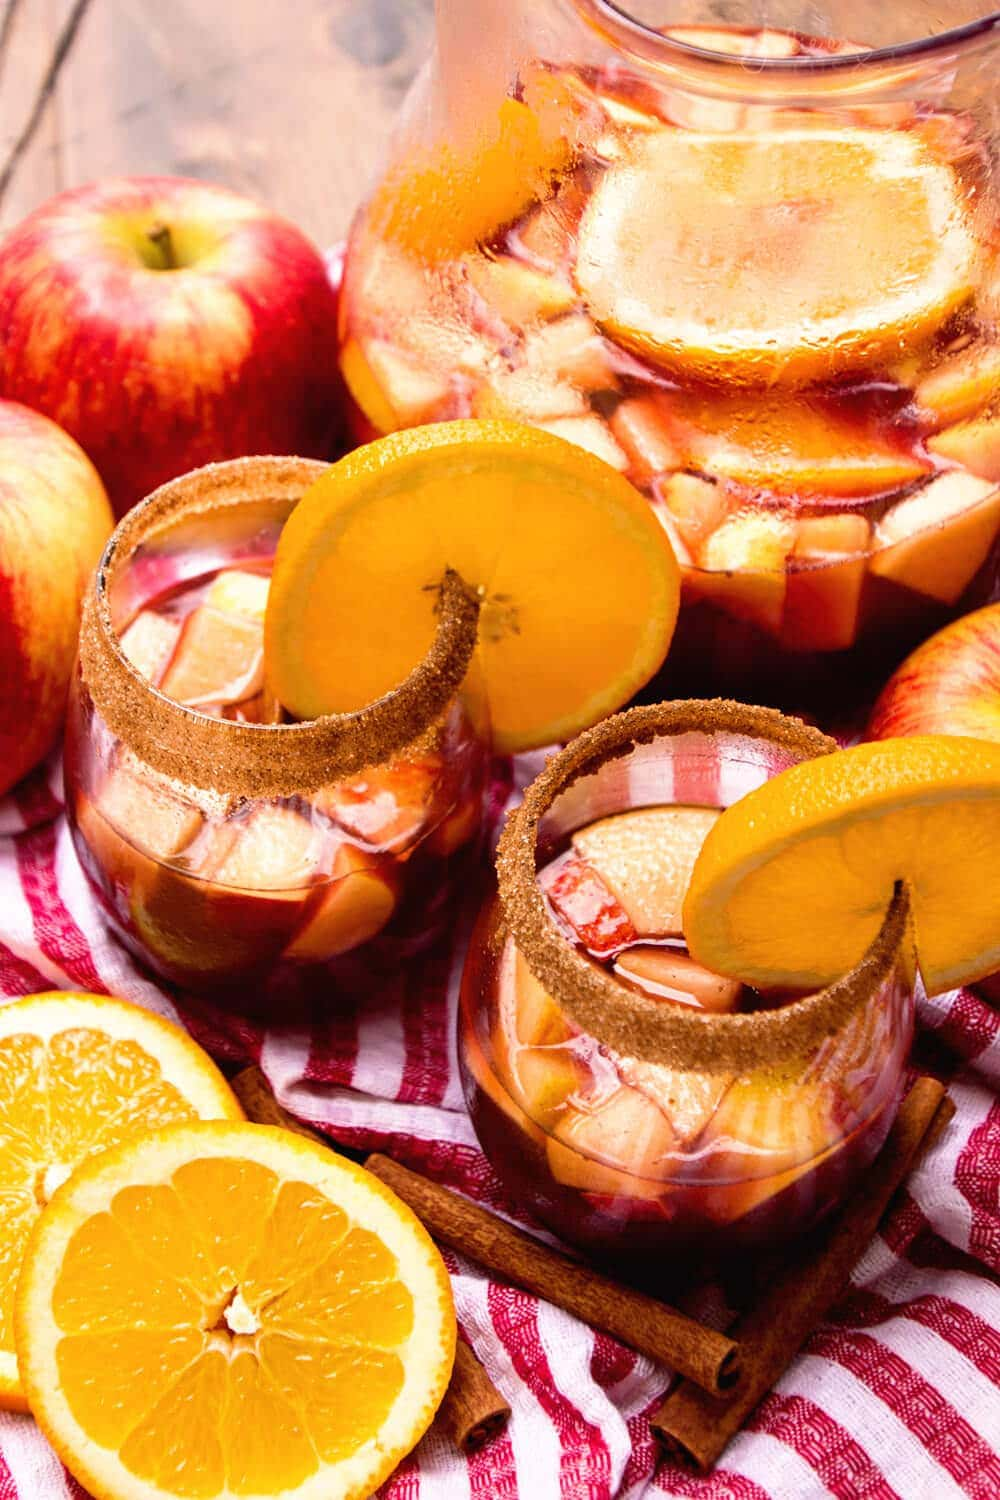 Red Apple Sangria Recipe ~ Delicious Red Spritzer with Cinnamon, Apple Cider, Brandy, Apples and Oranges! Crisp and Refreshing Drink!